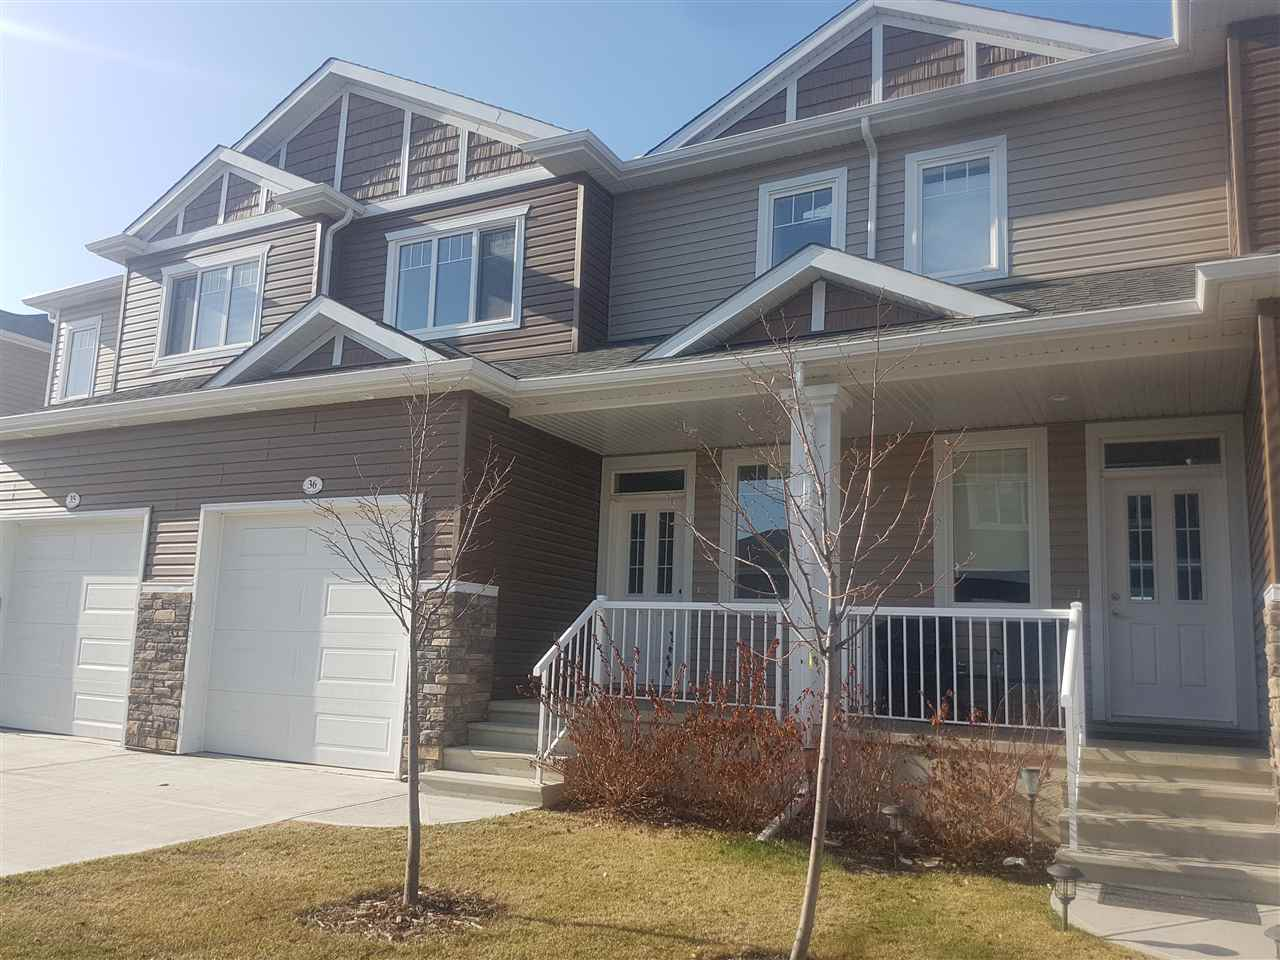 32 18230 104A Street, 3 bed, 4 bath, at $315,000